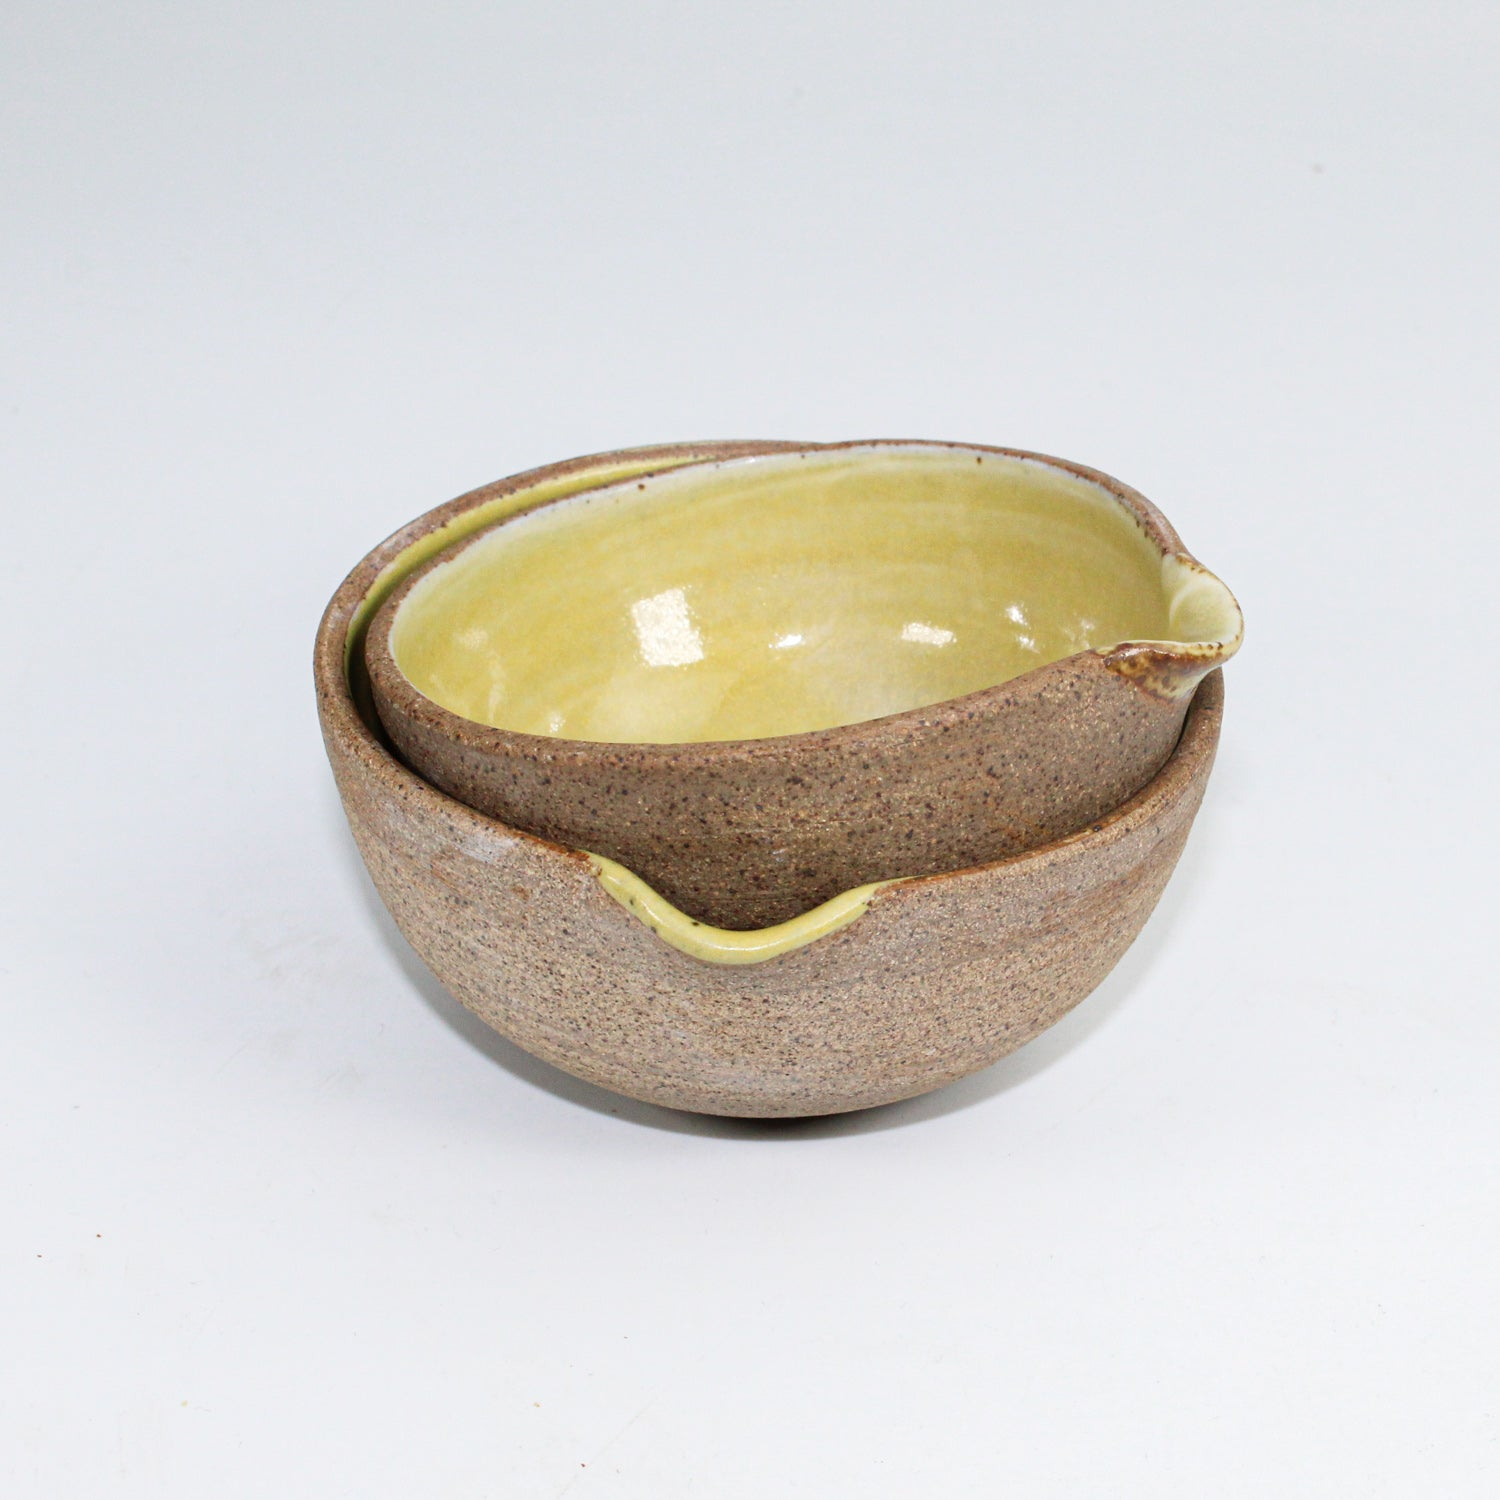 Pair of ceramic pouring bowls with mustard yellow insides. One stacked inside the other.